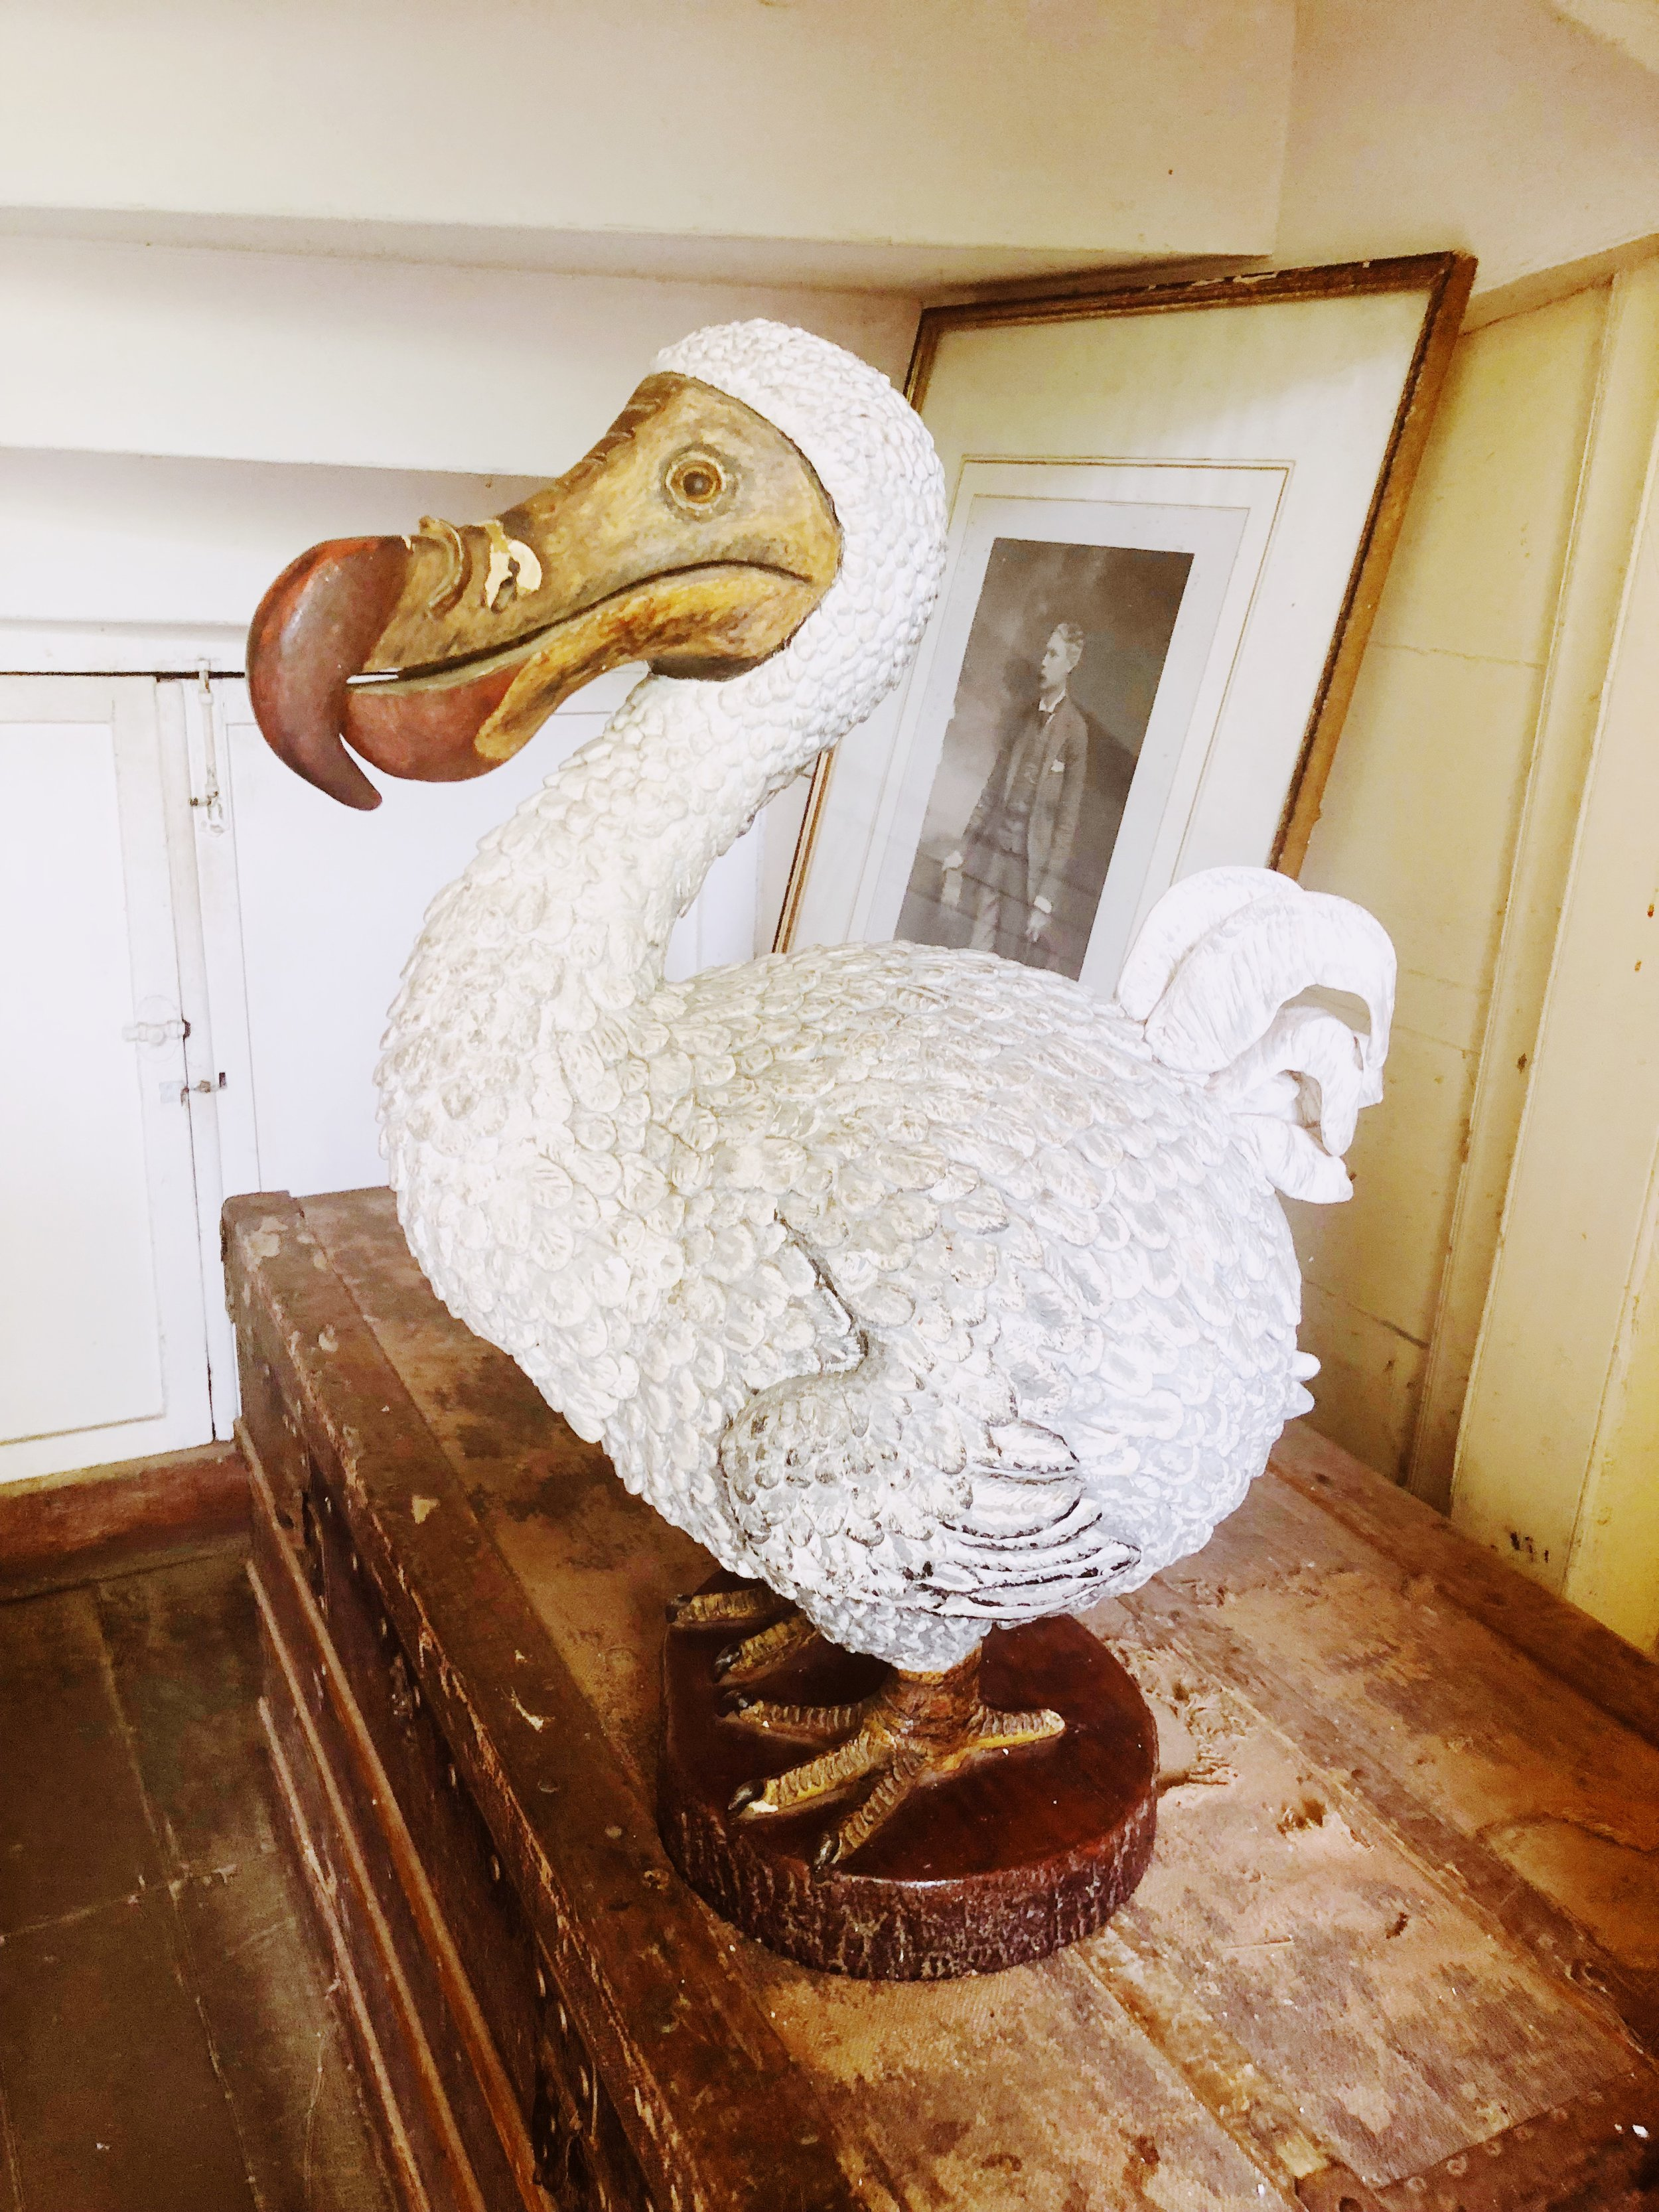 The Dodo of Mauritius - it's about that big!